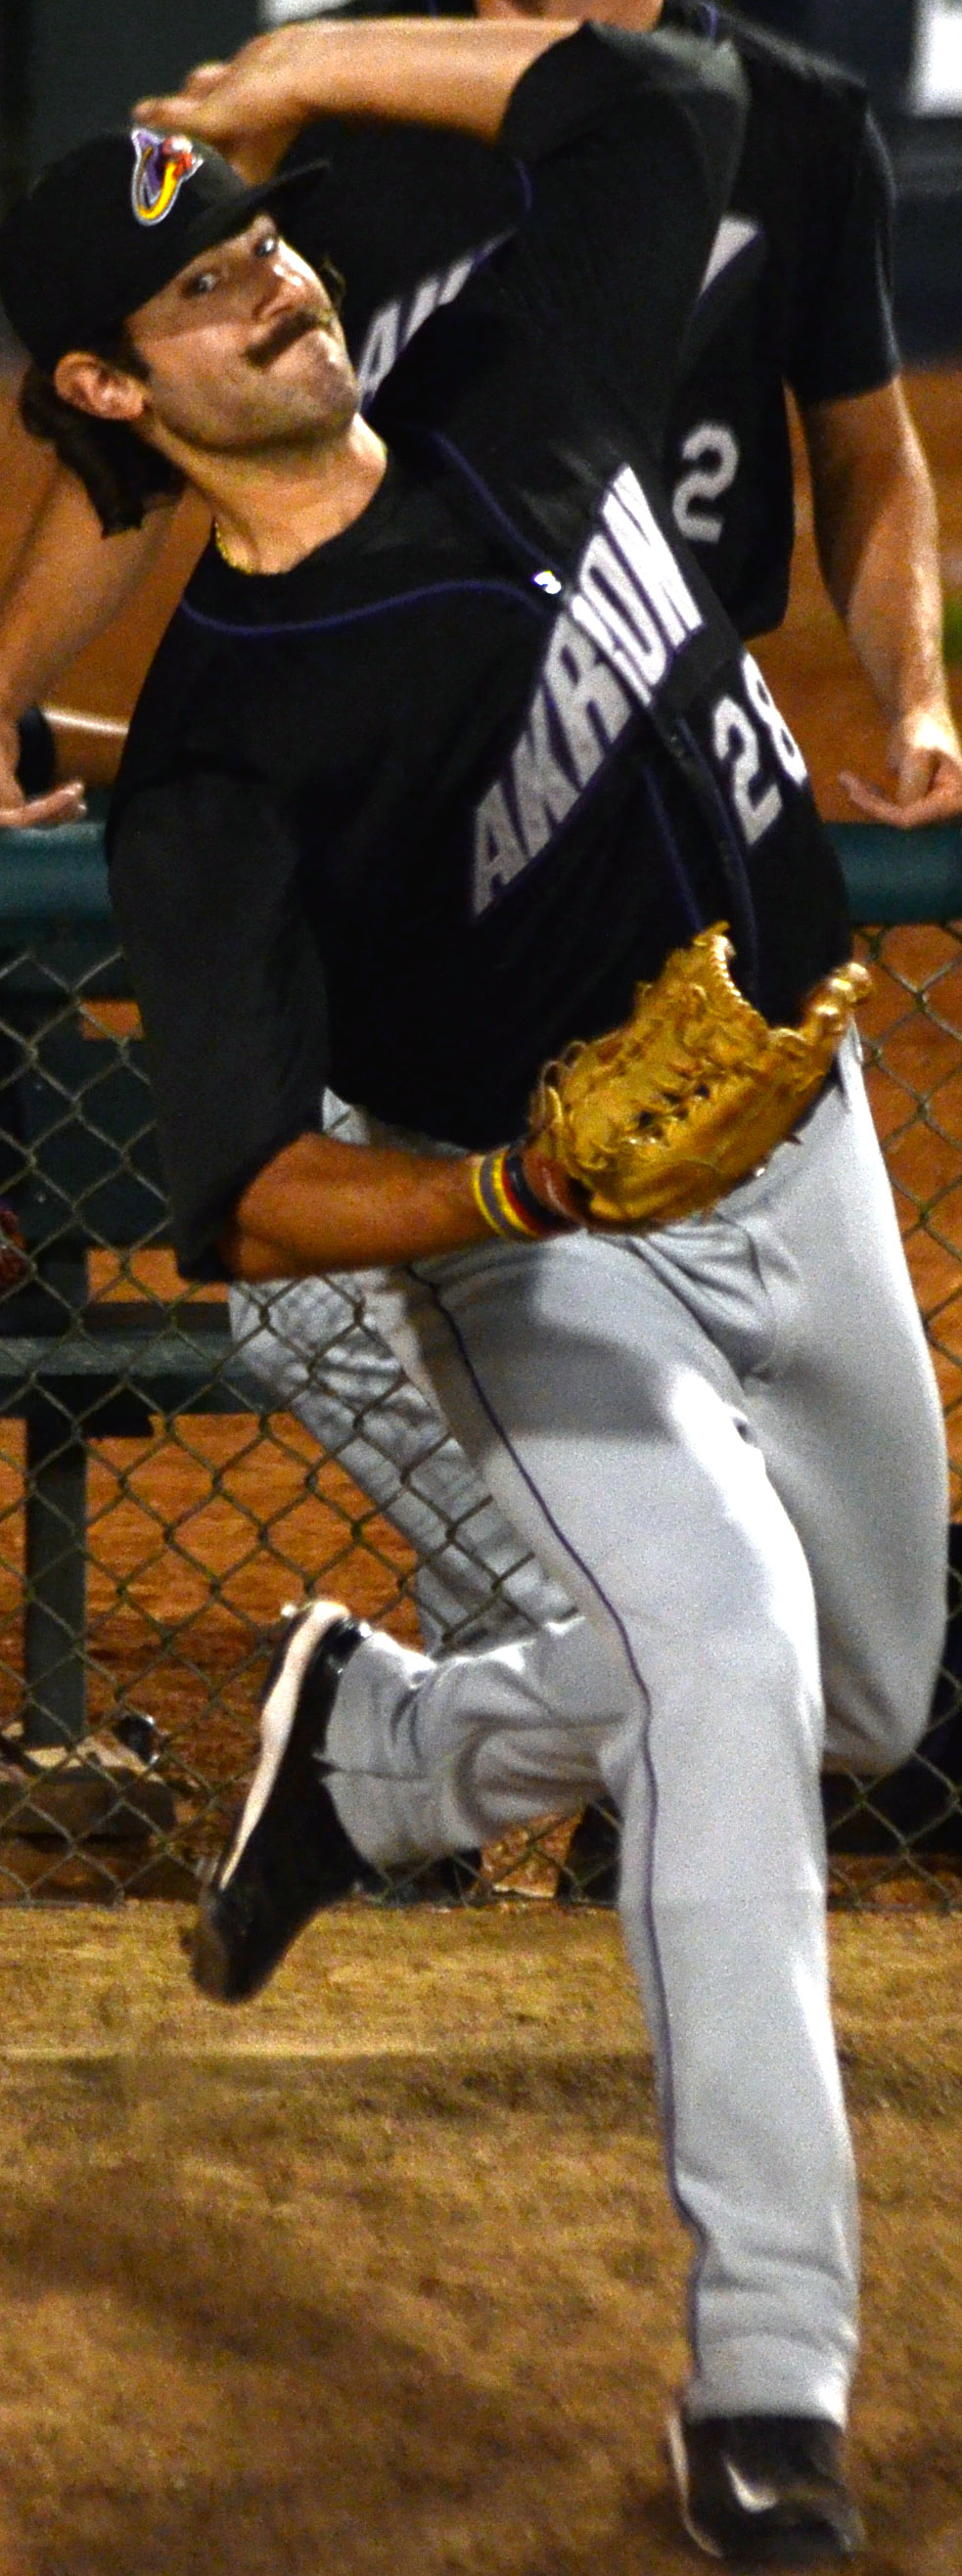 Click photo to download. Caption: Cleveland Indians minor league pitcher Eric Berger. Credit: Ken Mandel.